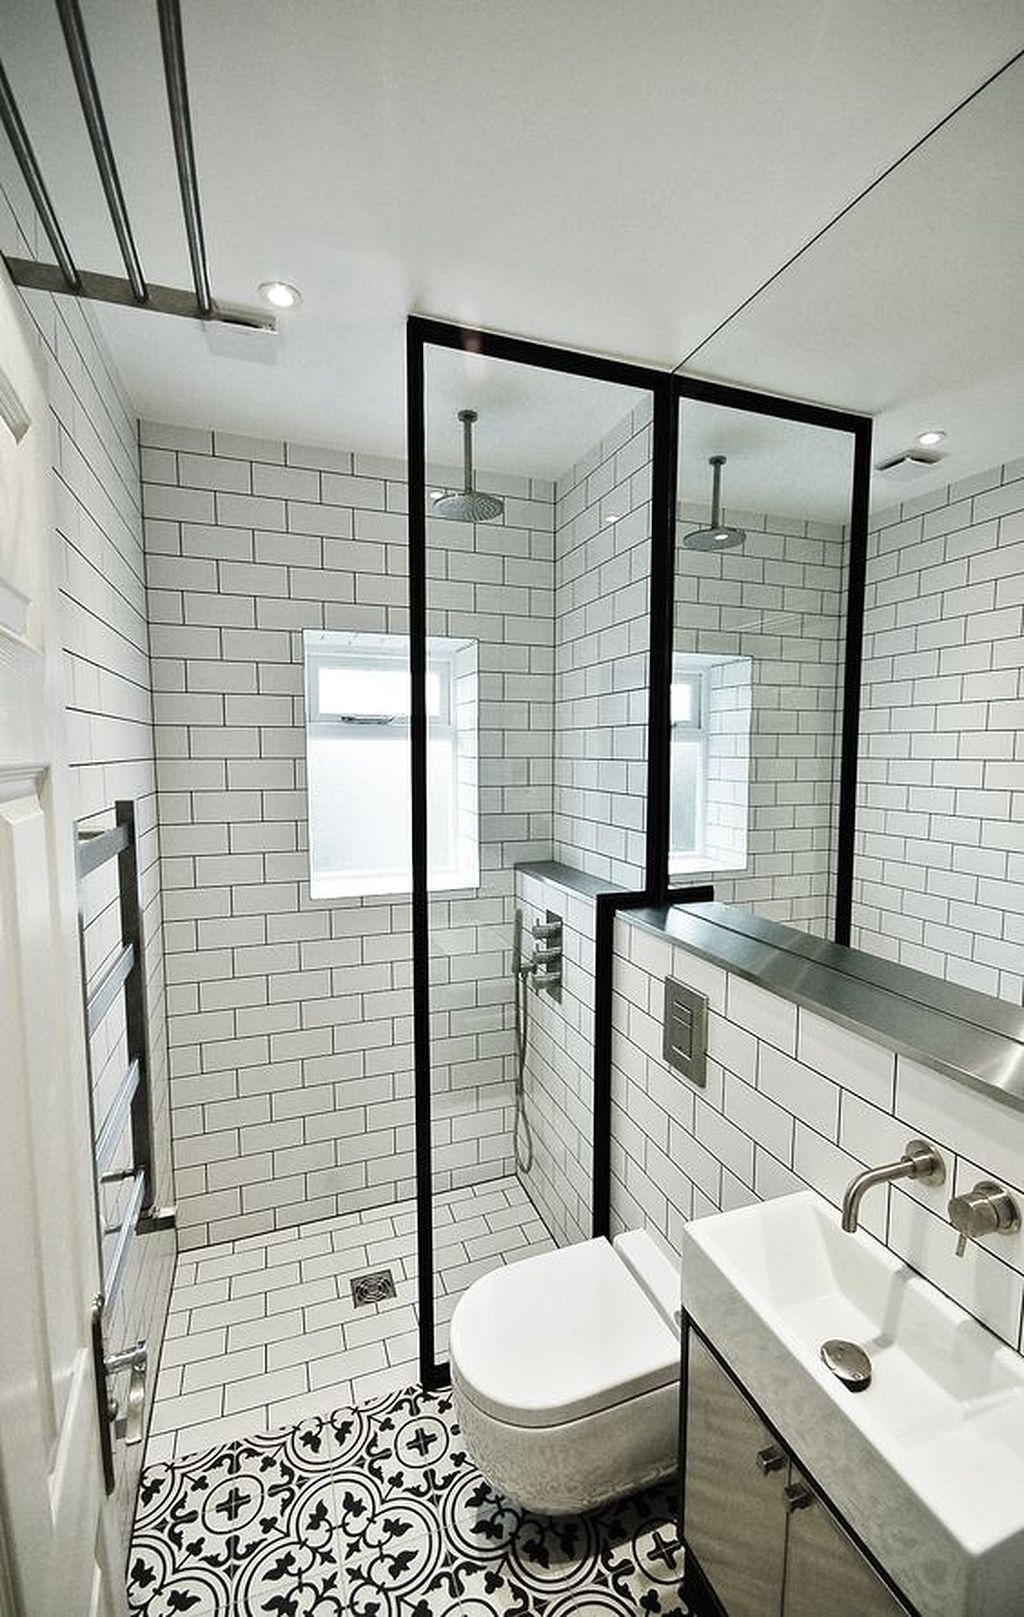 50+ Latest Trends in Bathroom Tile Design #bathroomtiledesigns